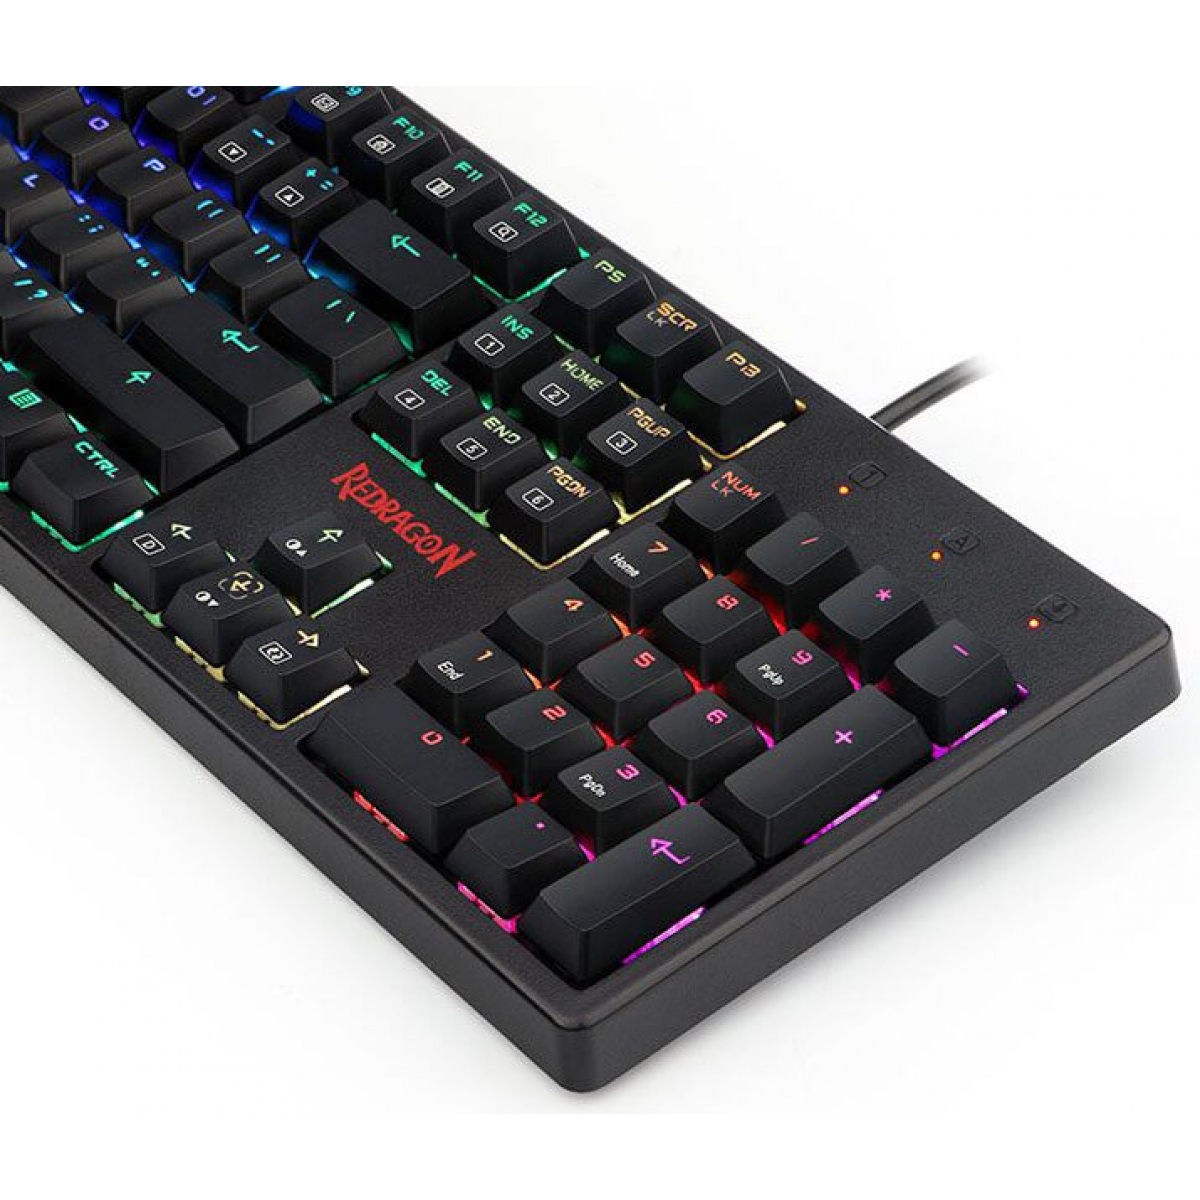 Teclado Mecânico Gamer Redragon Kama Switch Brown K578 RGB, Black - Open Box